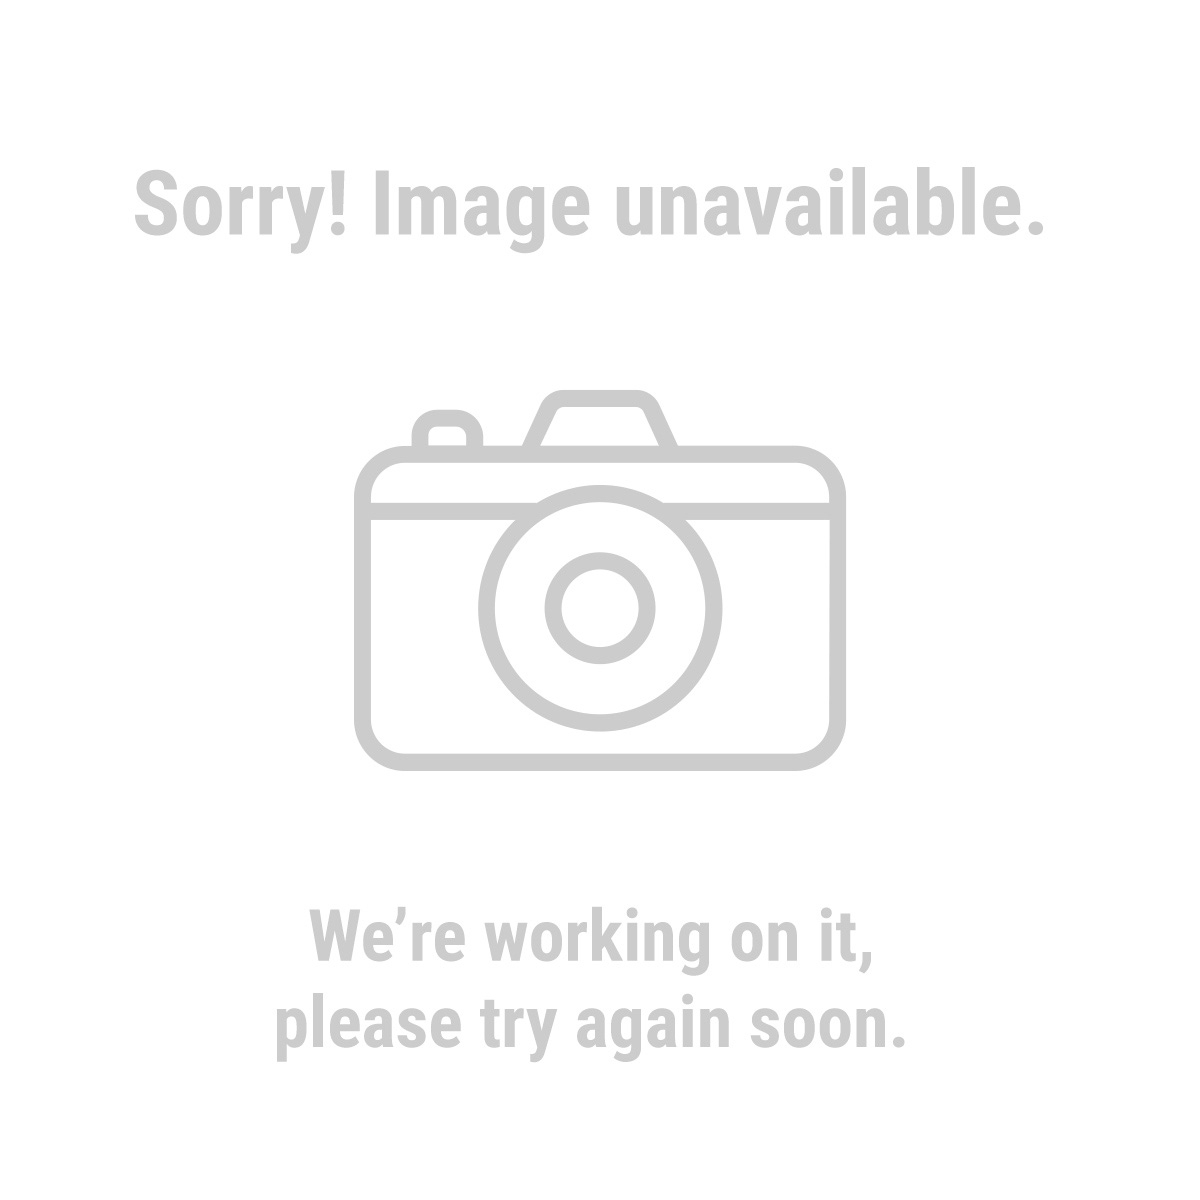 Western Safety 97405 Nylon Knit Gloves with Polyurethane Palm, X-Large